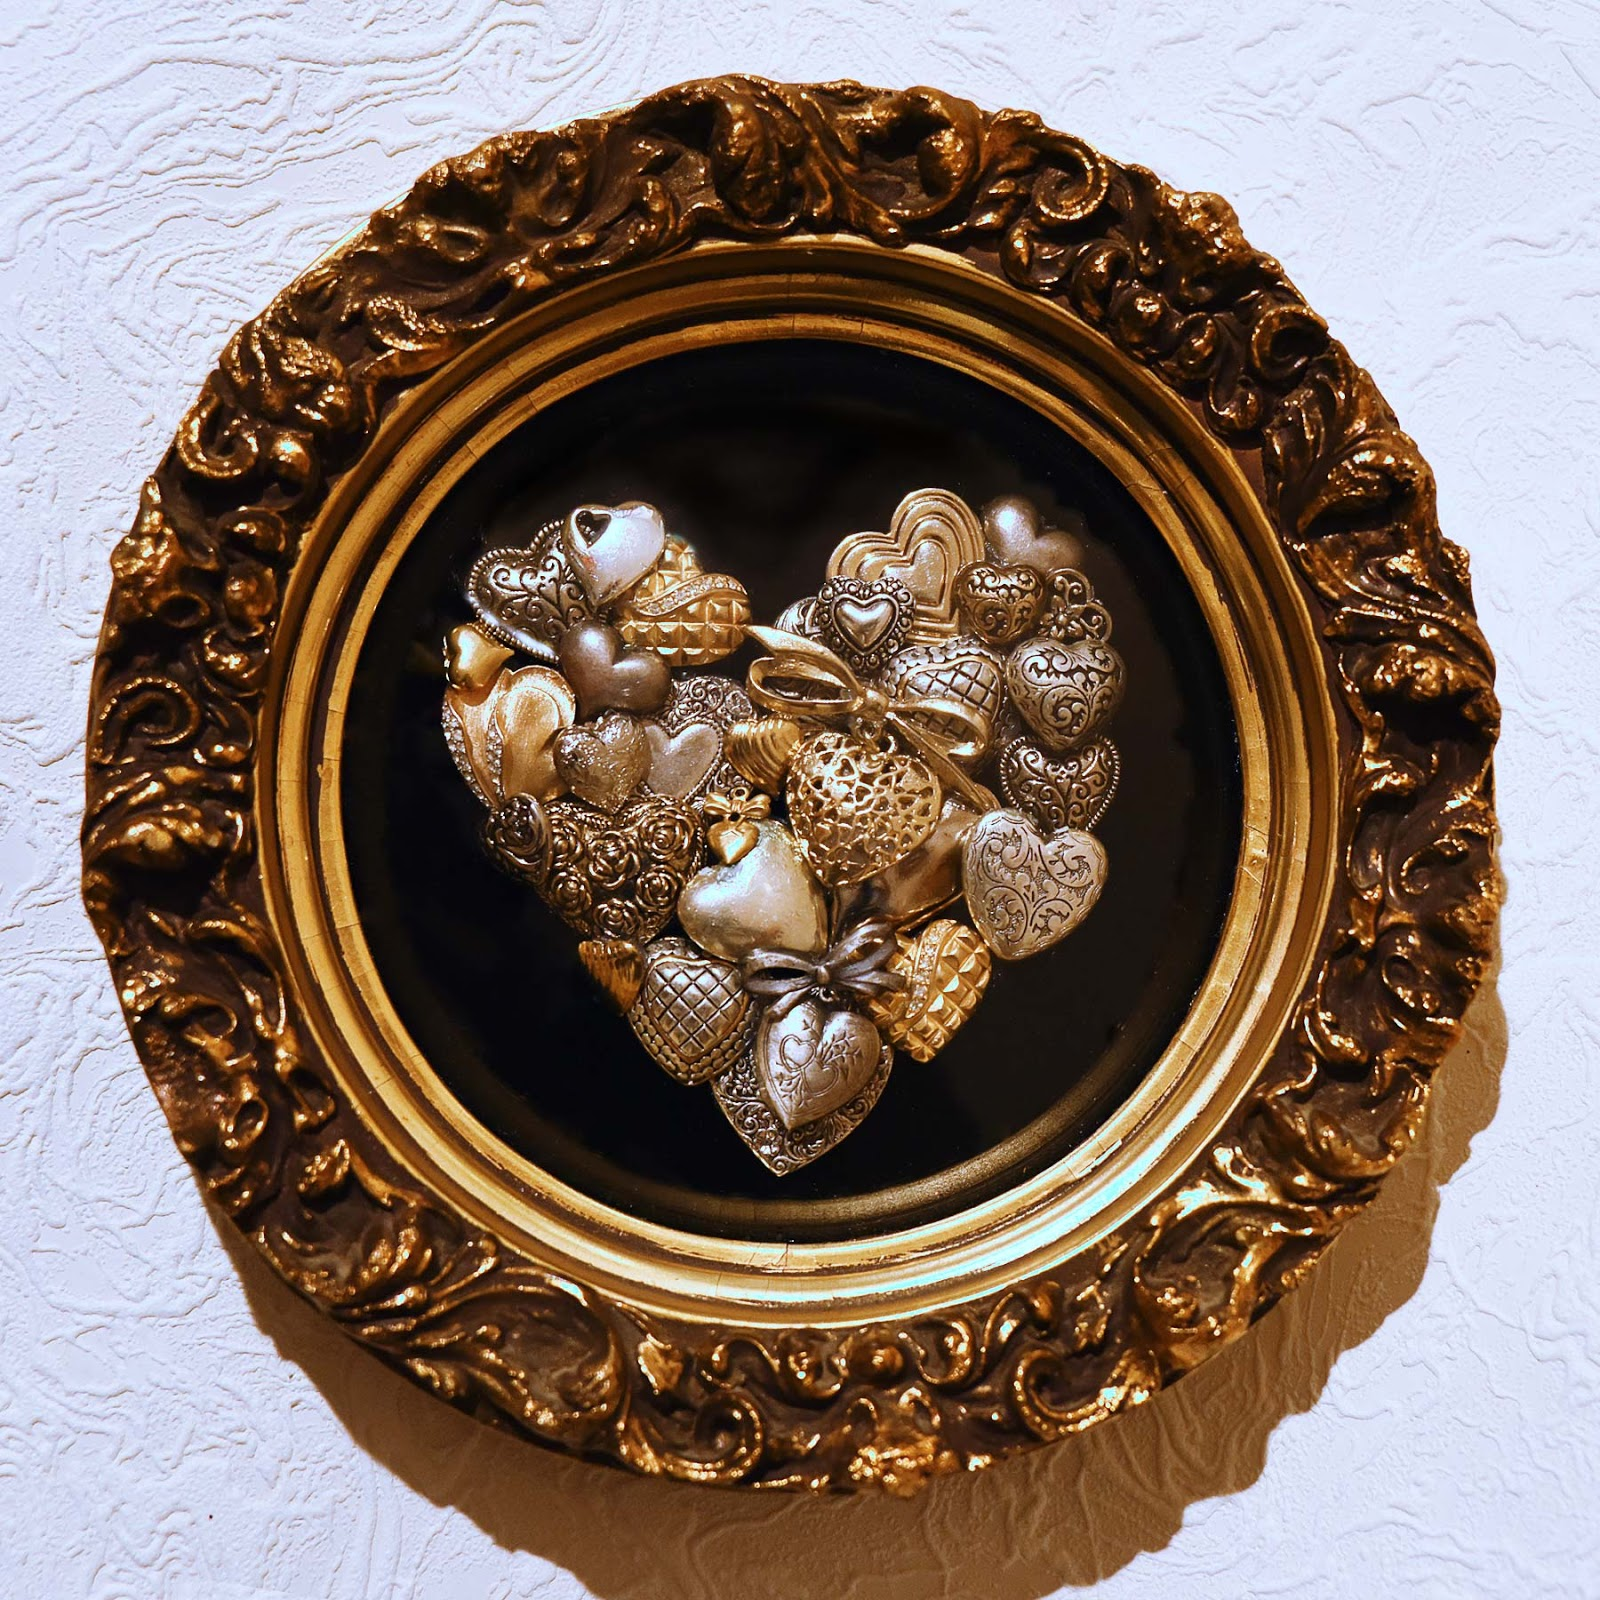 Silver and Gold Heart Project by Jeanne Selep